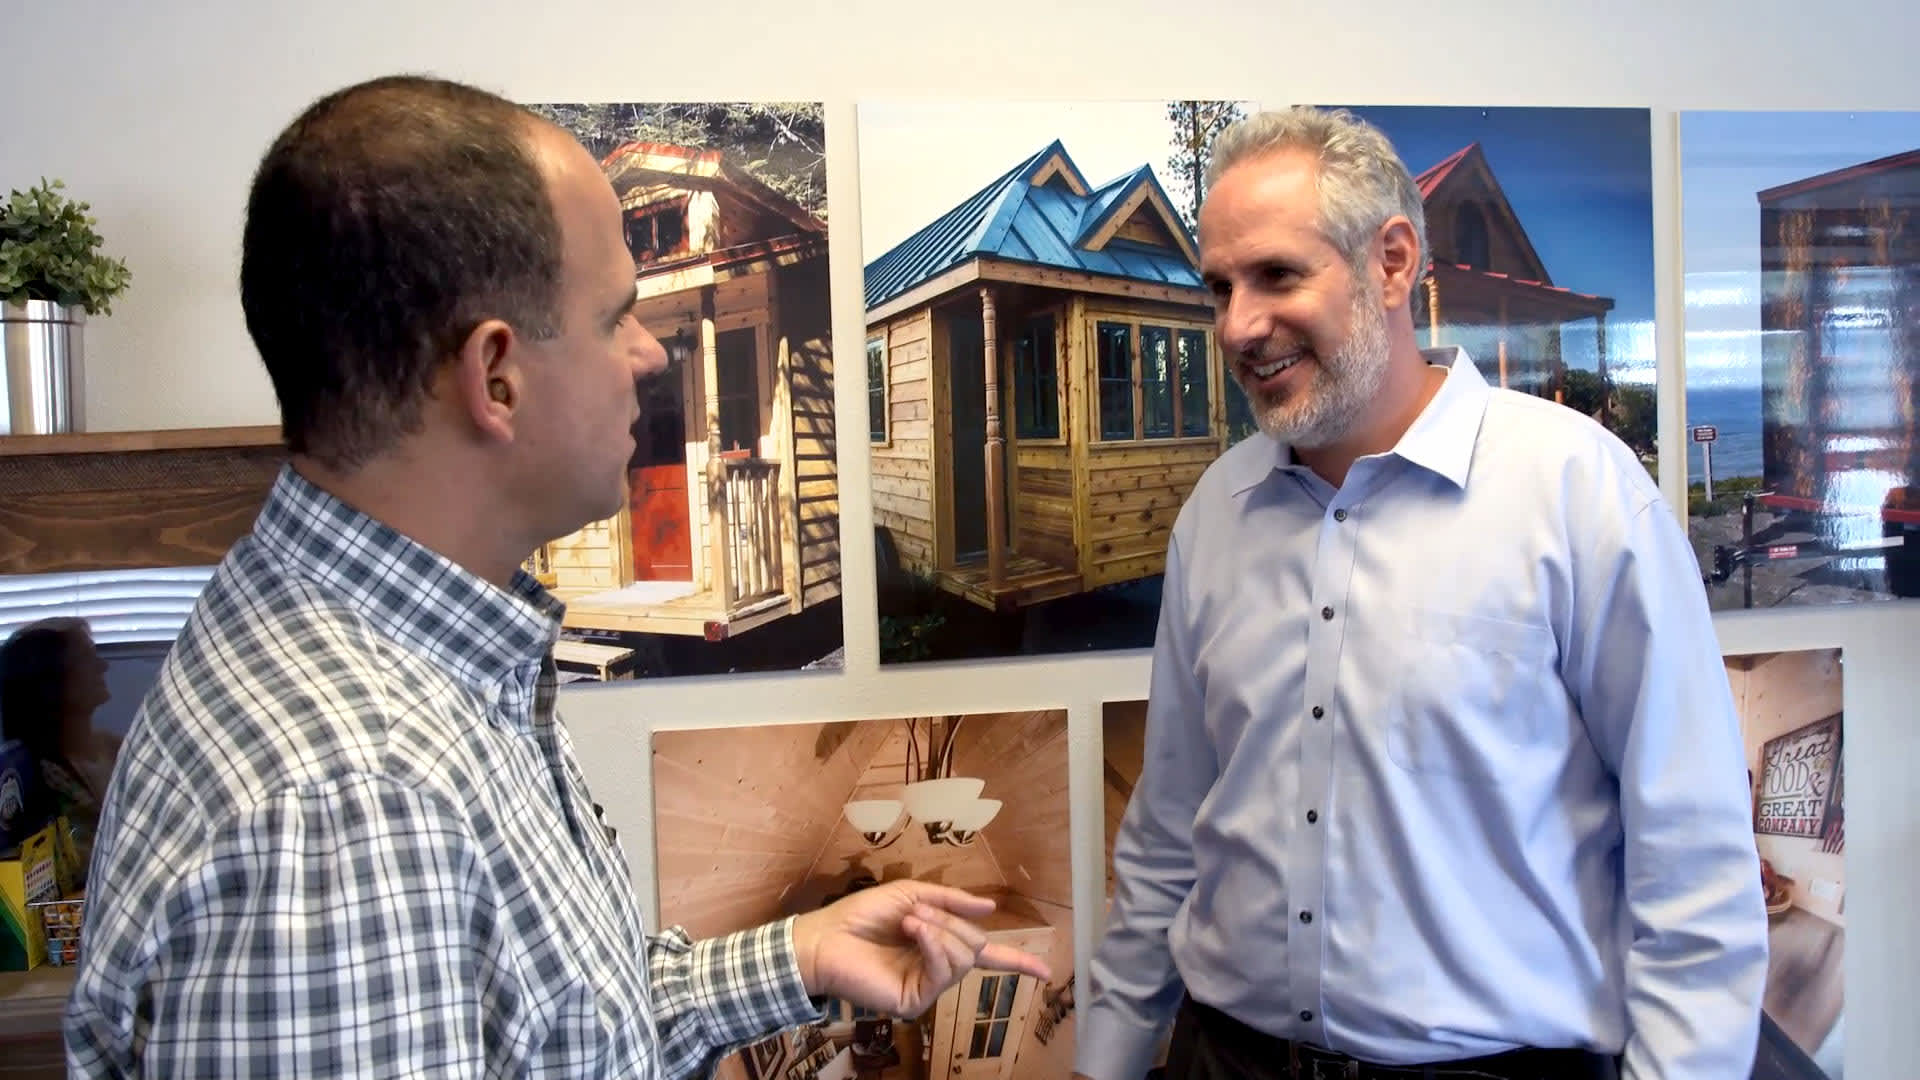 Tumbleweed Ceo Steve Weissmann Explains The Tiny Home Trend,Rent A Home Away From Home